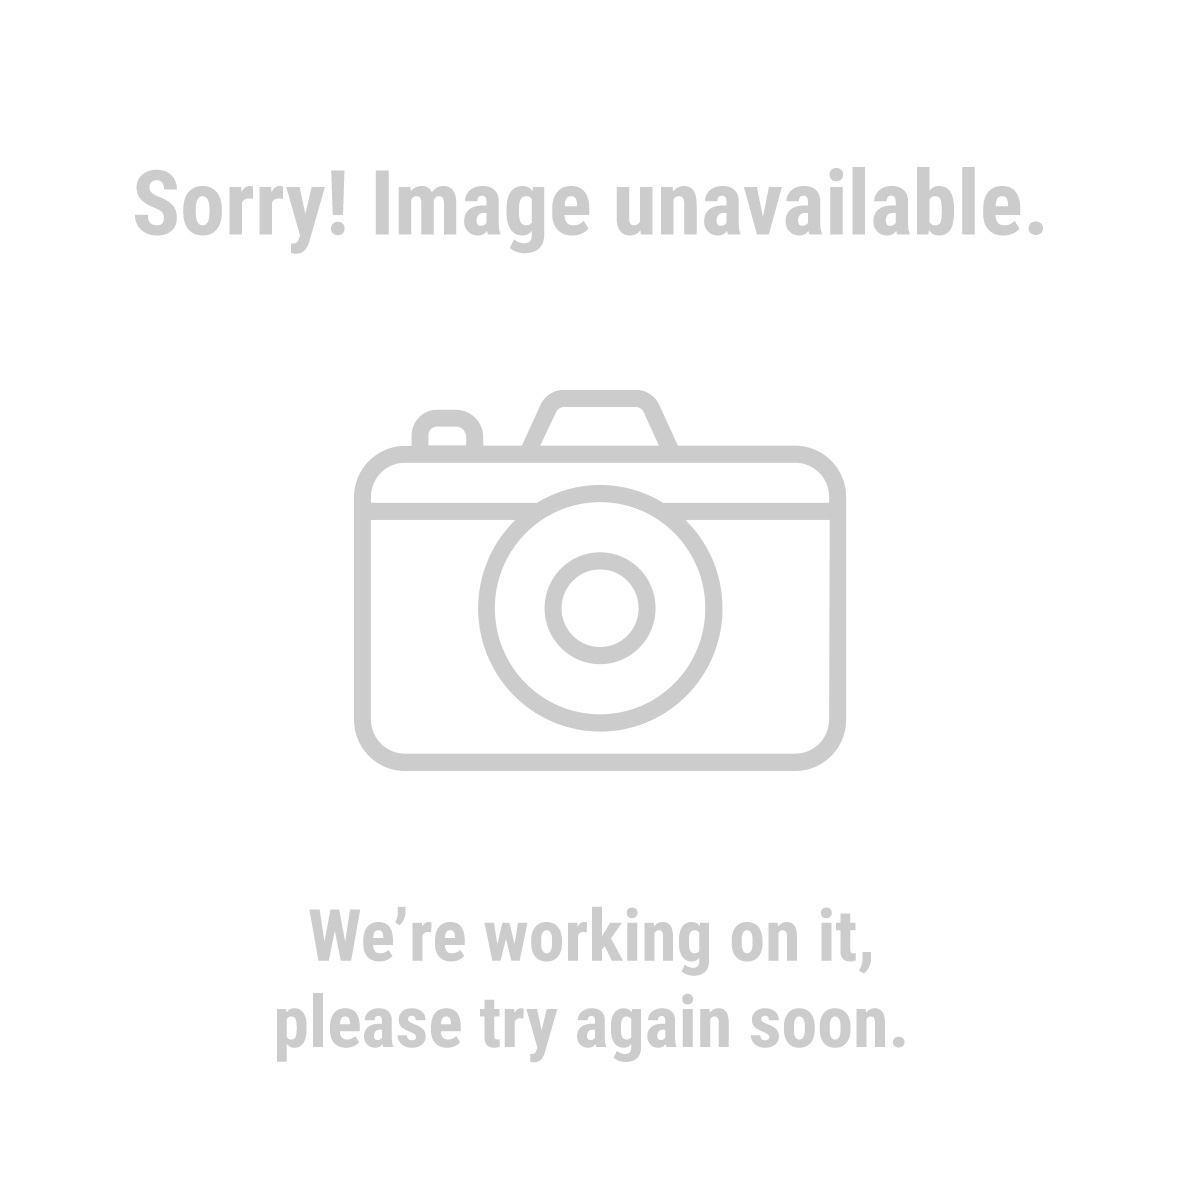 Pittsburgh® 63016 40 Pc Carbon Steel SAE Tap and Die Set